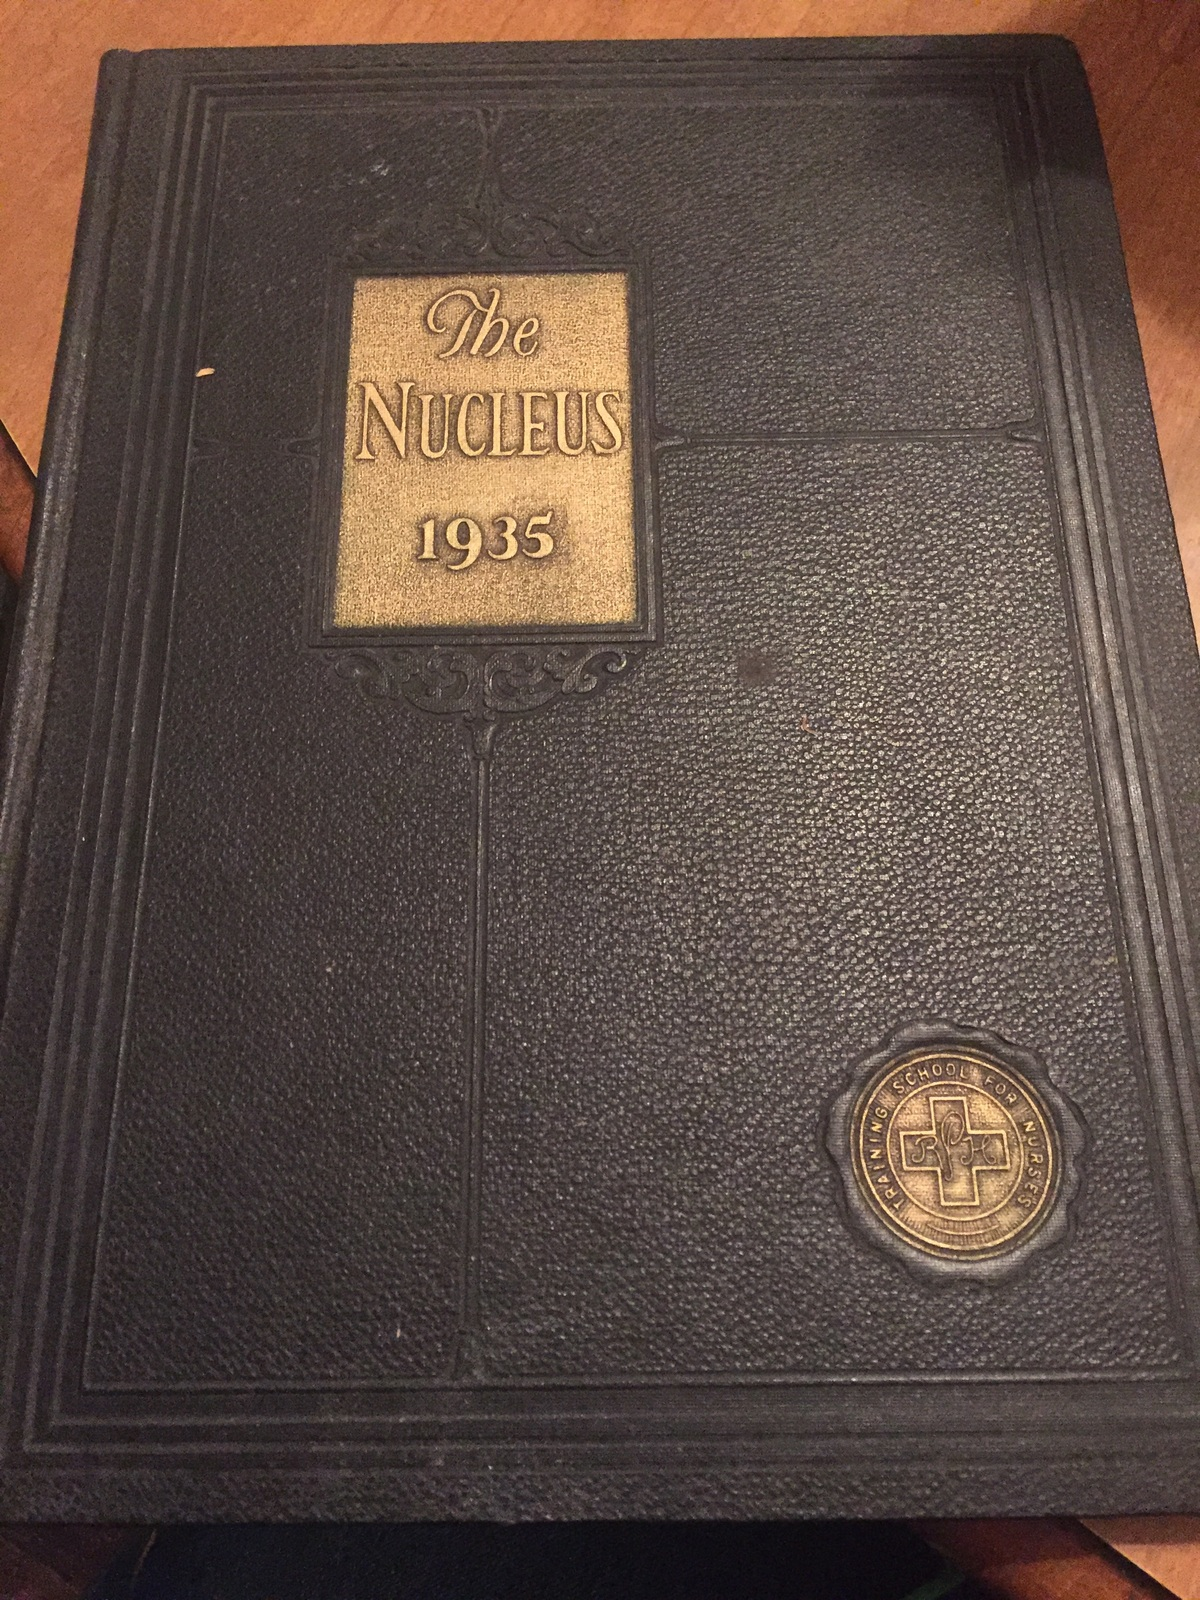 The Nucleus 1935 yearbook drh115